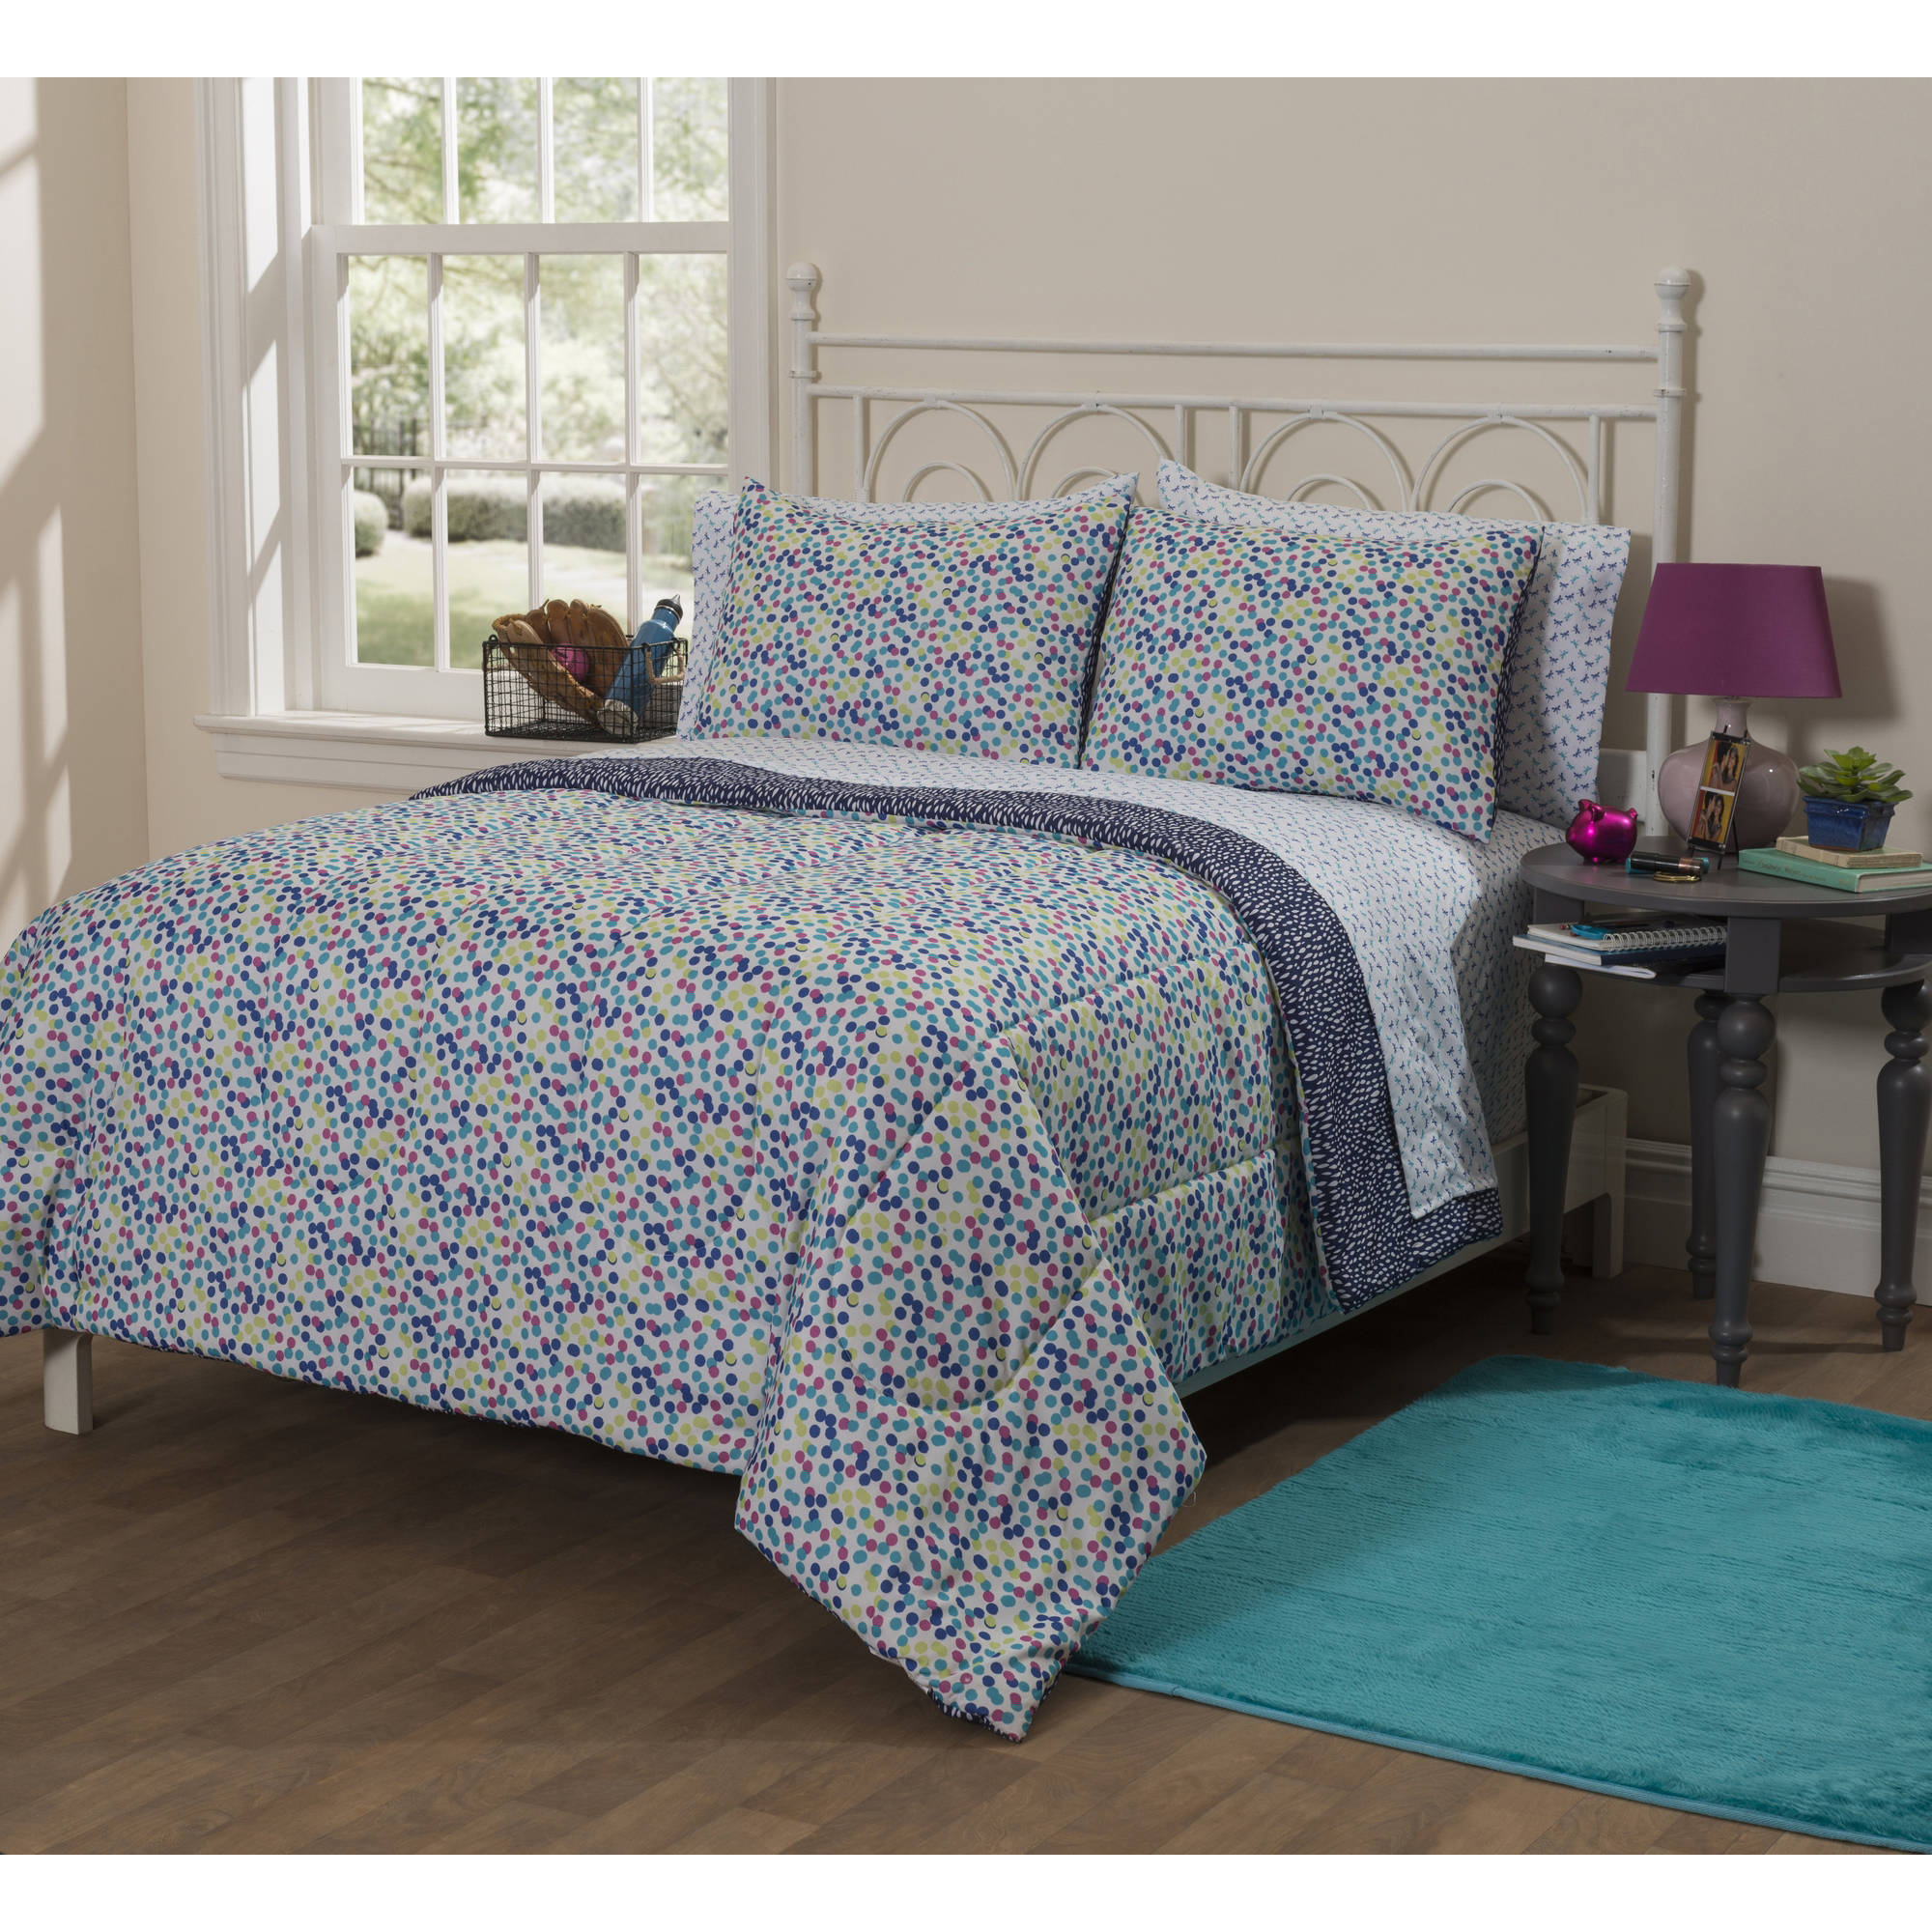 Latitude Scattered Dots Bed in a Bag Bedding Set